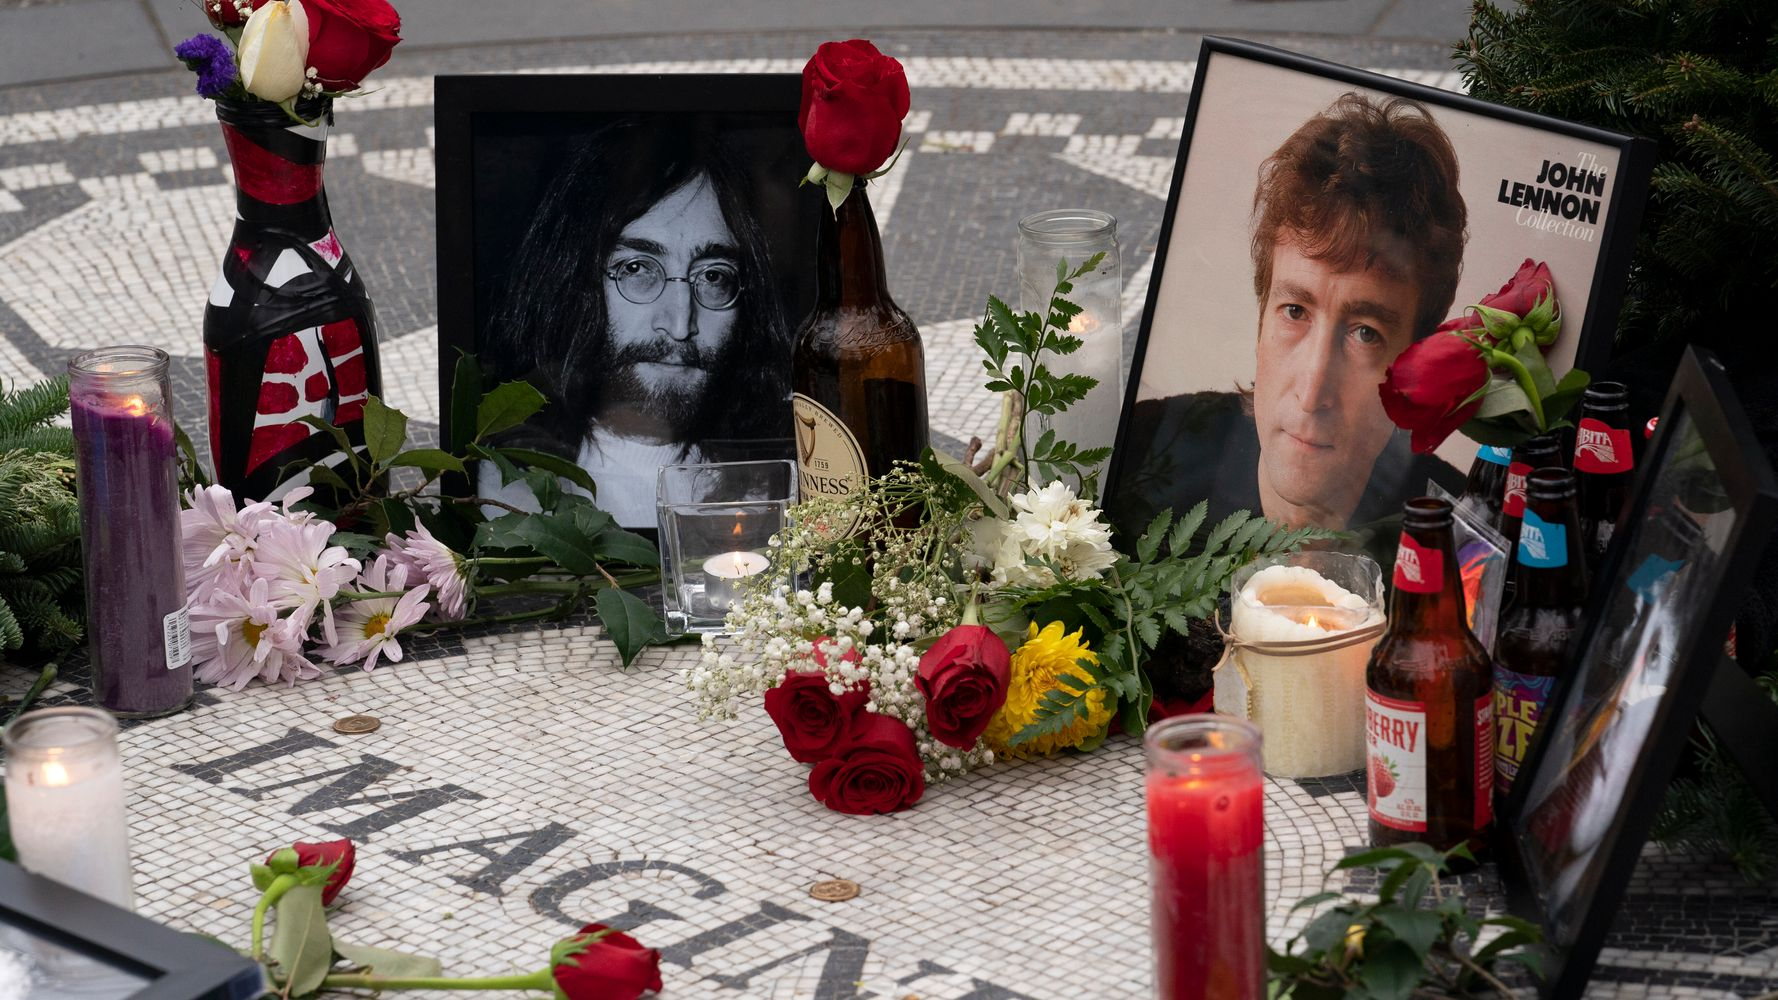 John Lennon's Death Remembered By Yoko Ono, Fellow Beatles And Fans